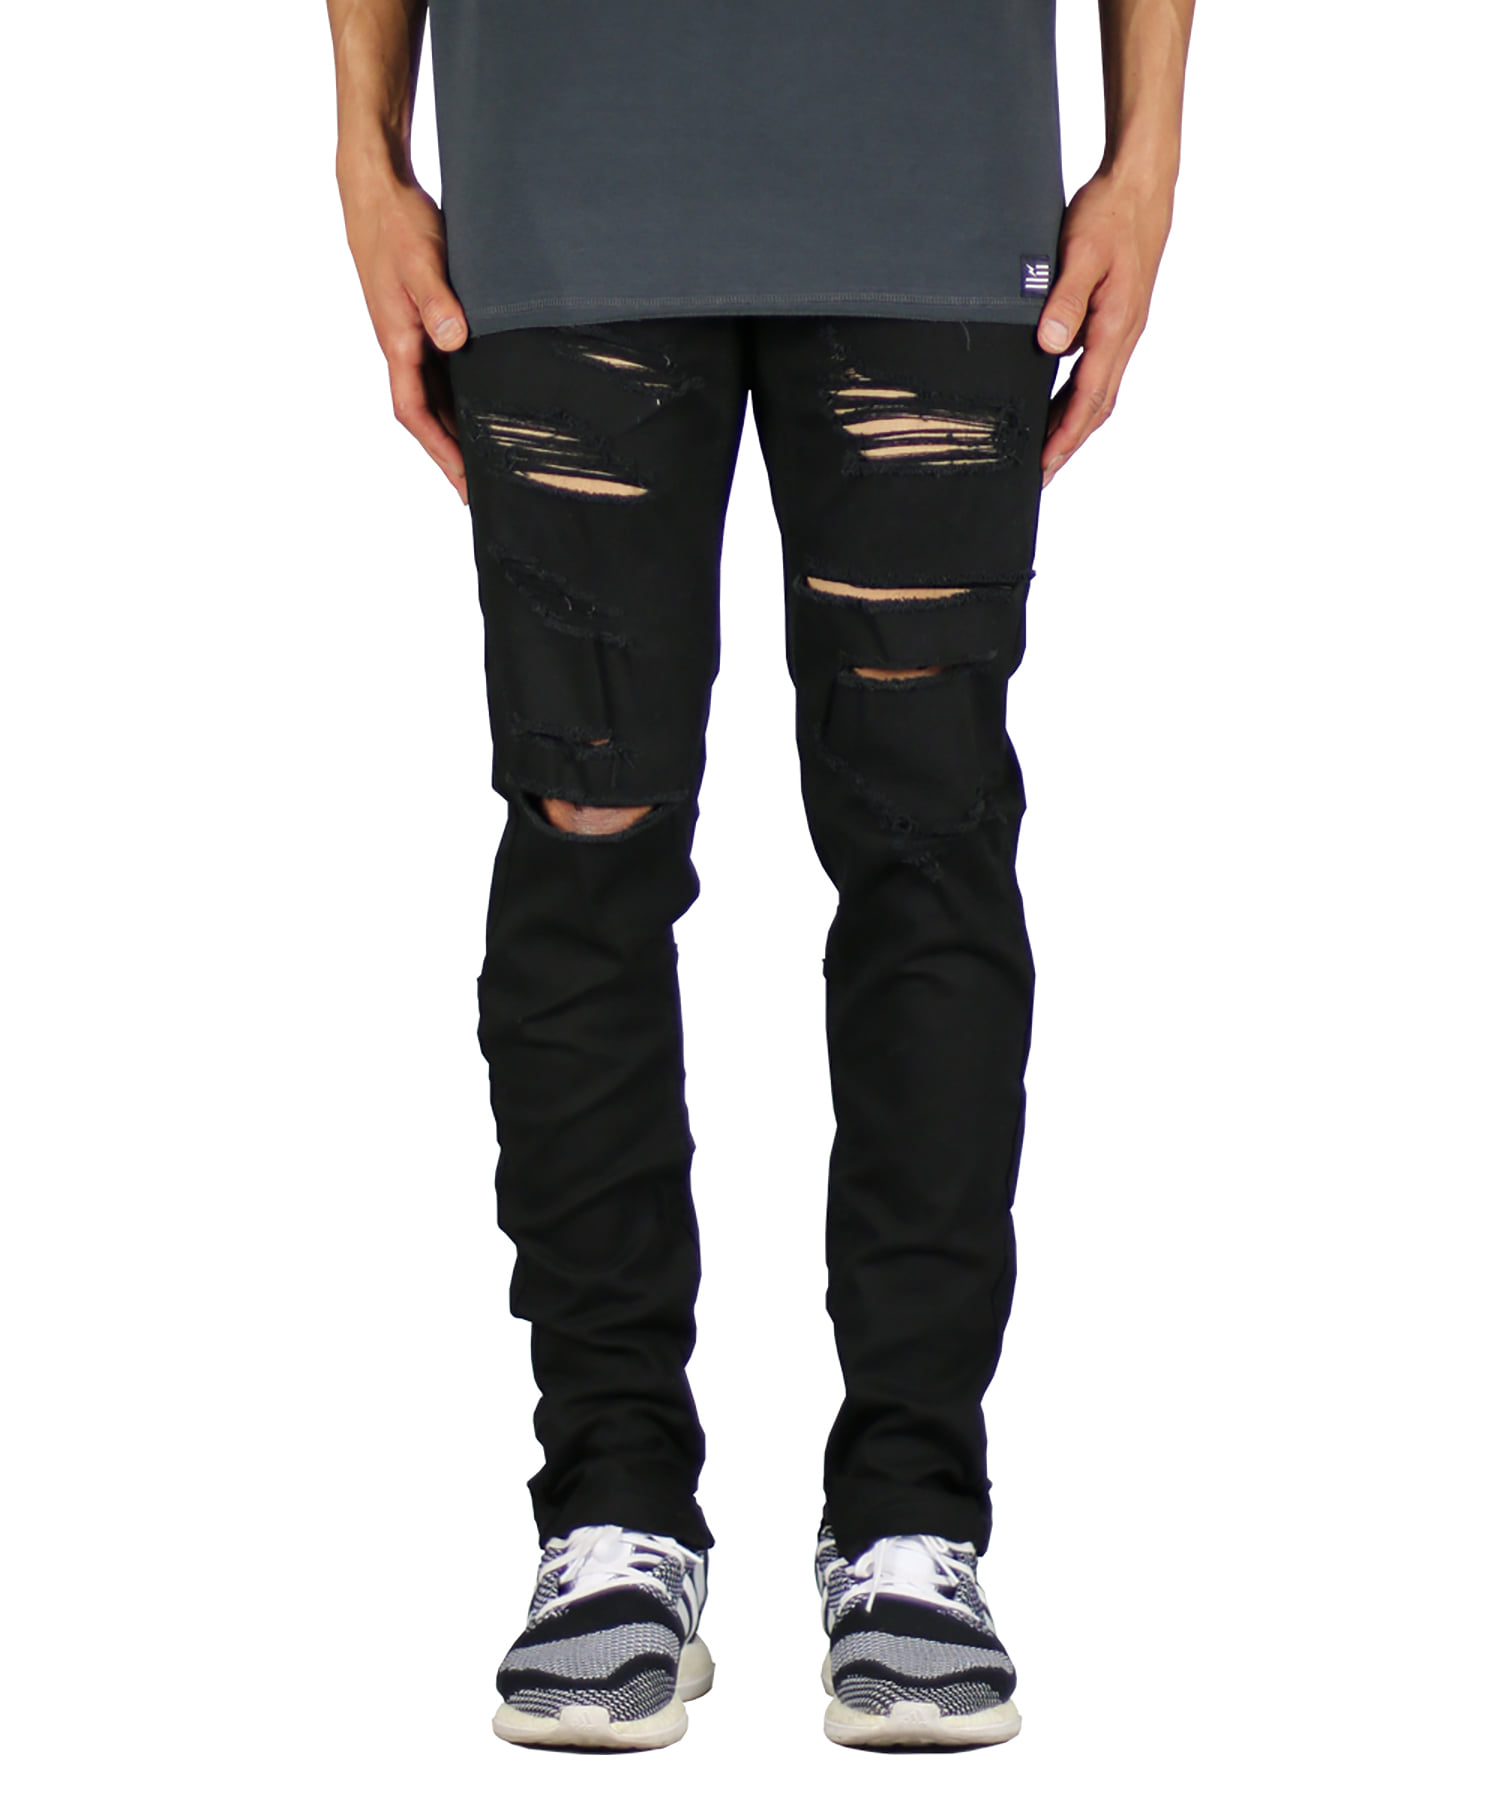 Black Ato Zipper Pant